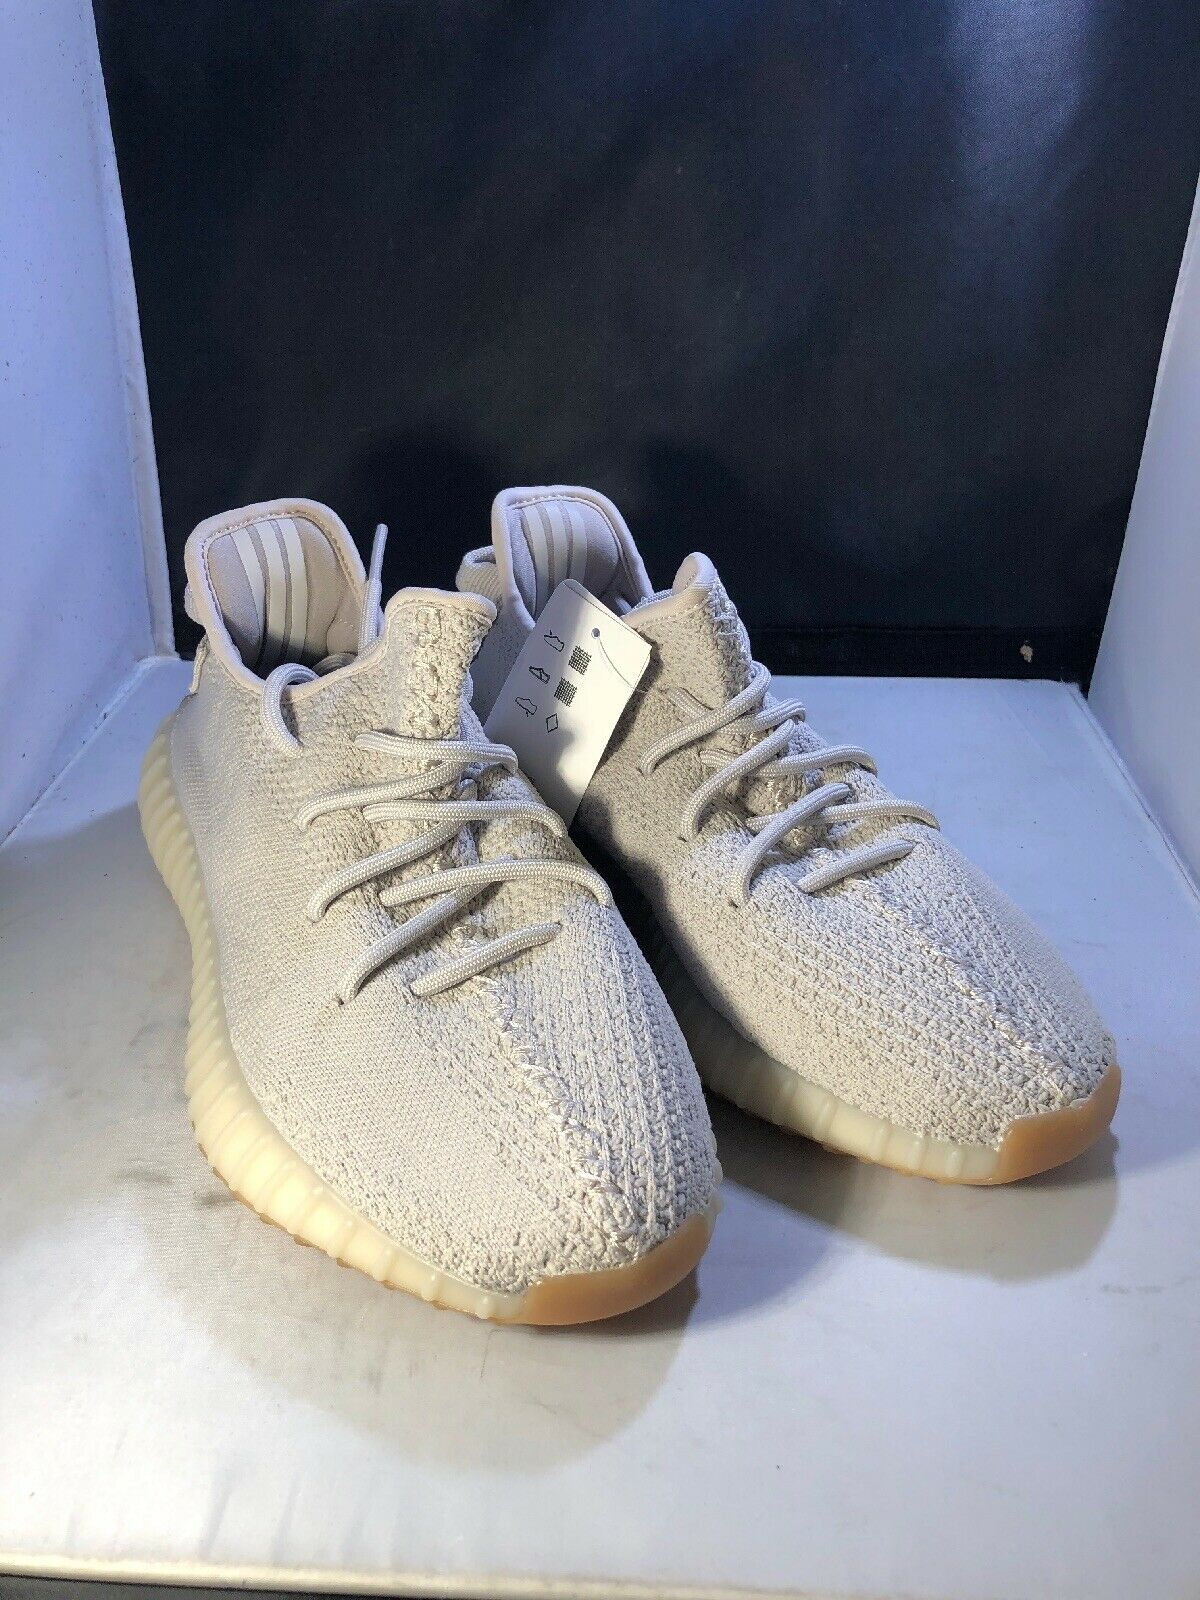 on sale e8ea2 30145 adidas Yeezy Boost 350 V2 Sesame 100 Authentic Size 7